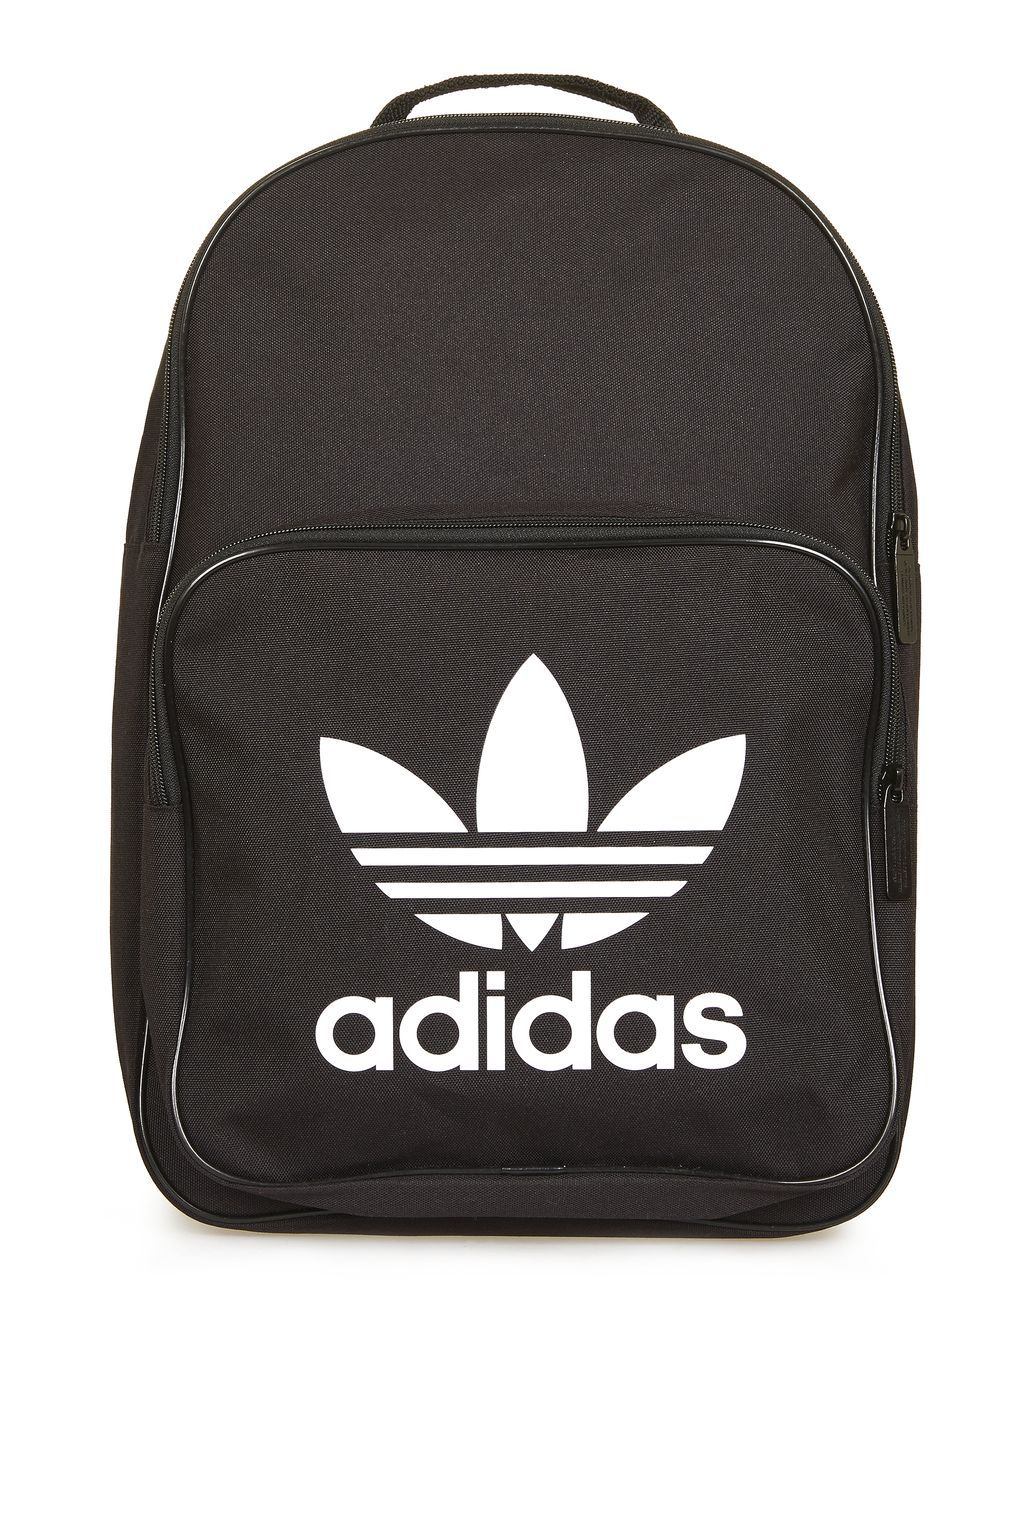 3188867064fb0 adidas Originals Trefoil Logo Backpack In Black ( 28) ❤ liked on Polyvore  featuring bags